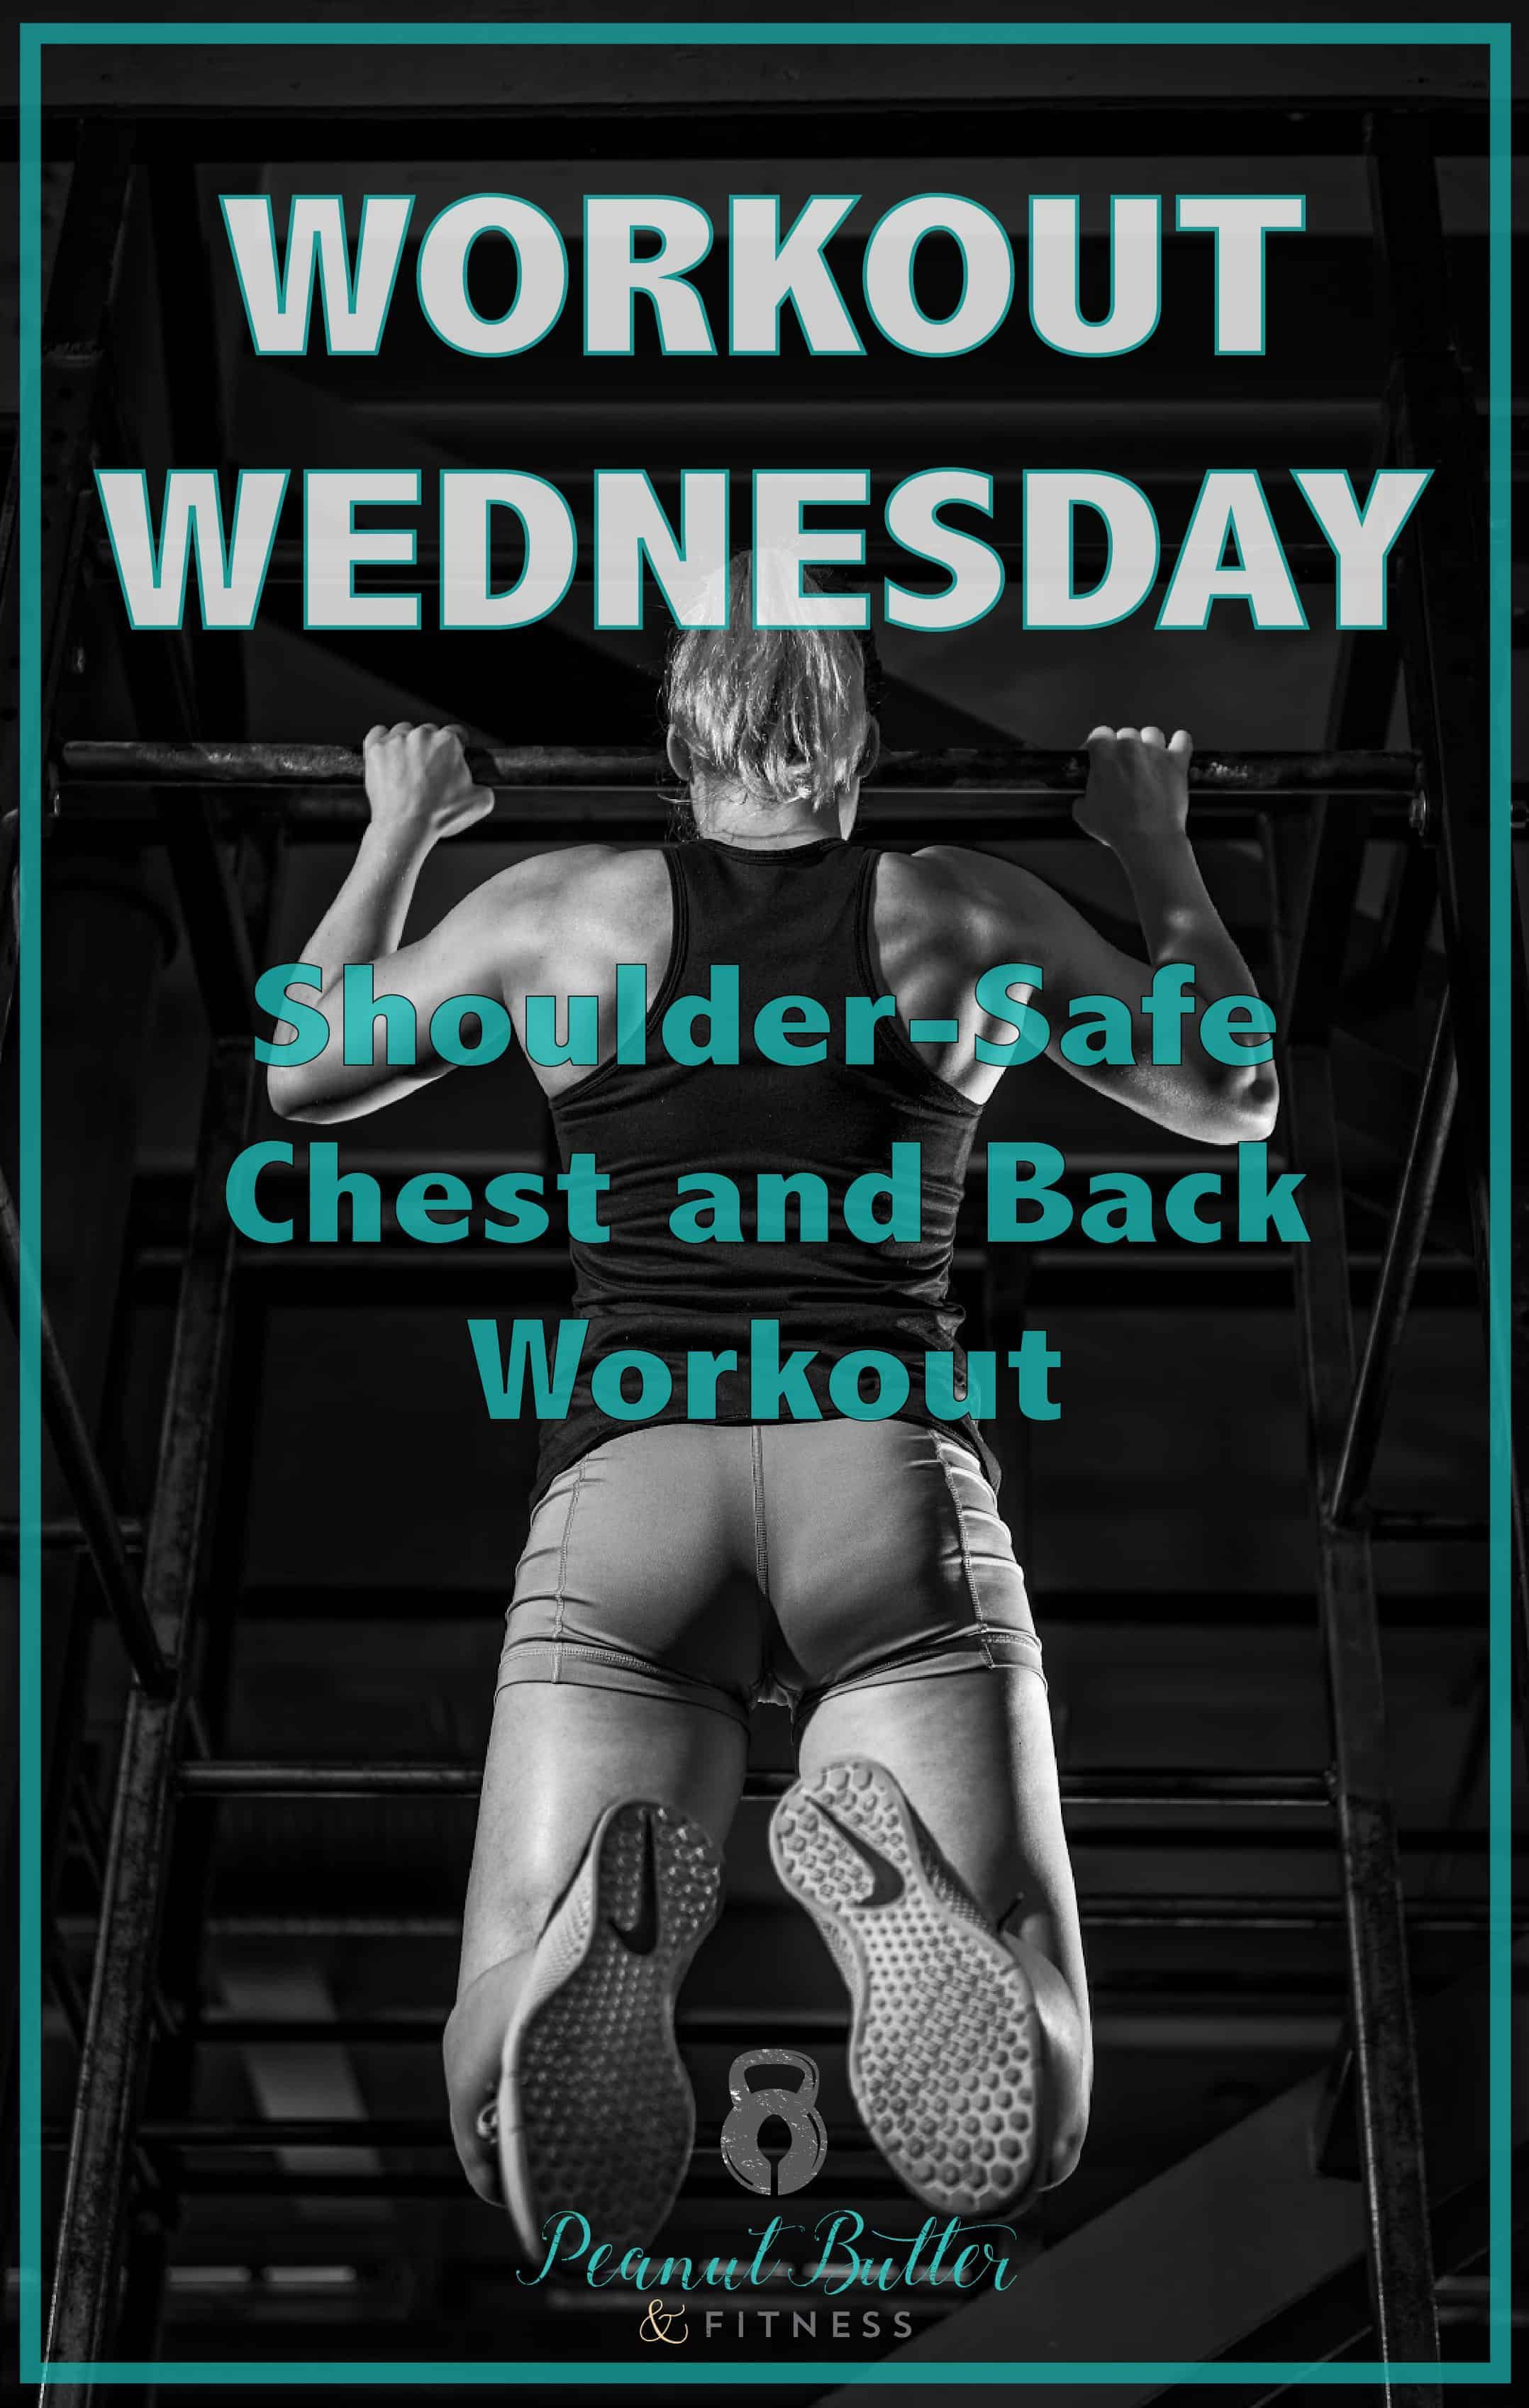 Workout wednesday - shoulde safe chest and back workout-01